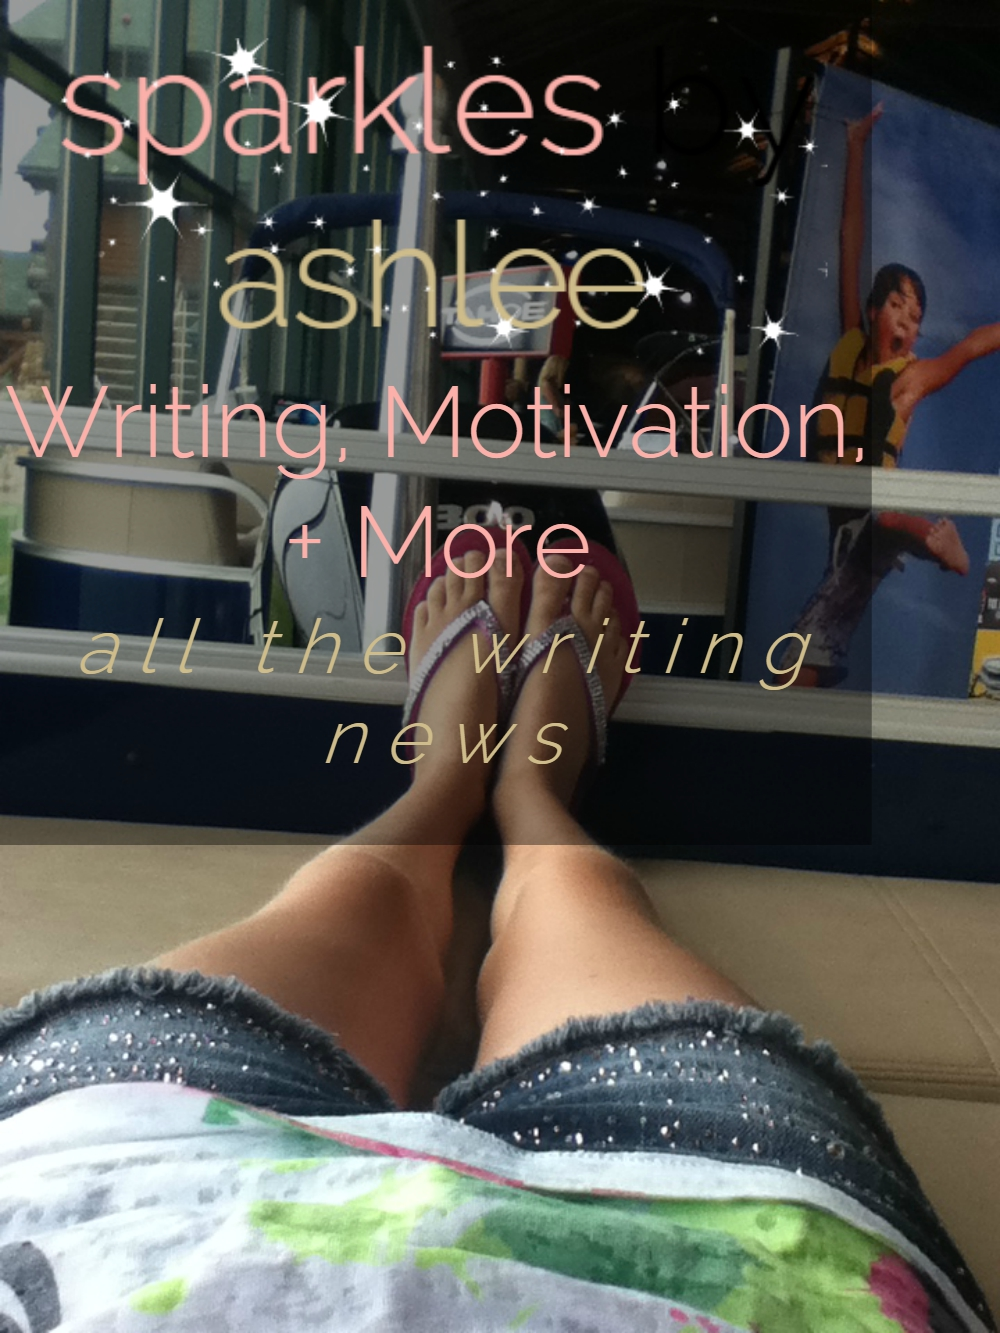 Writing-Motivation-Plus-More.jpg